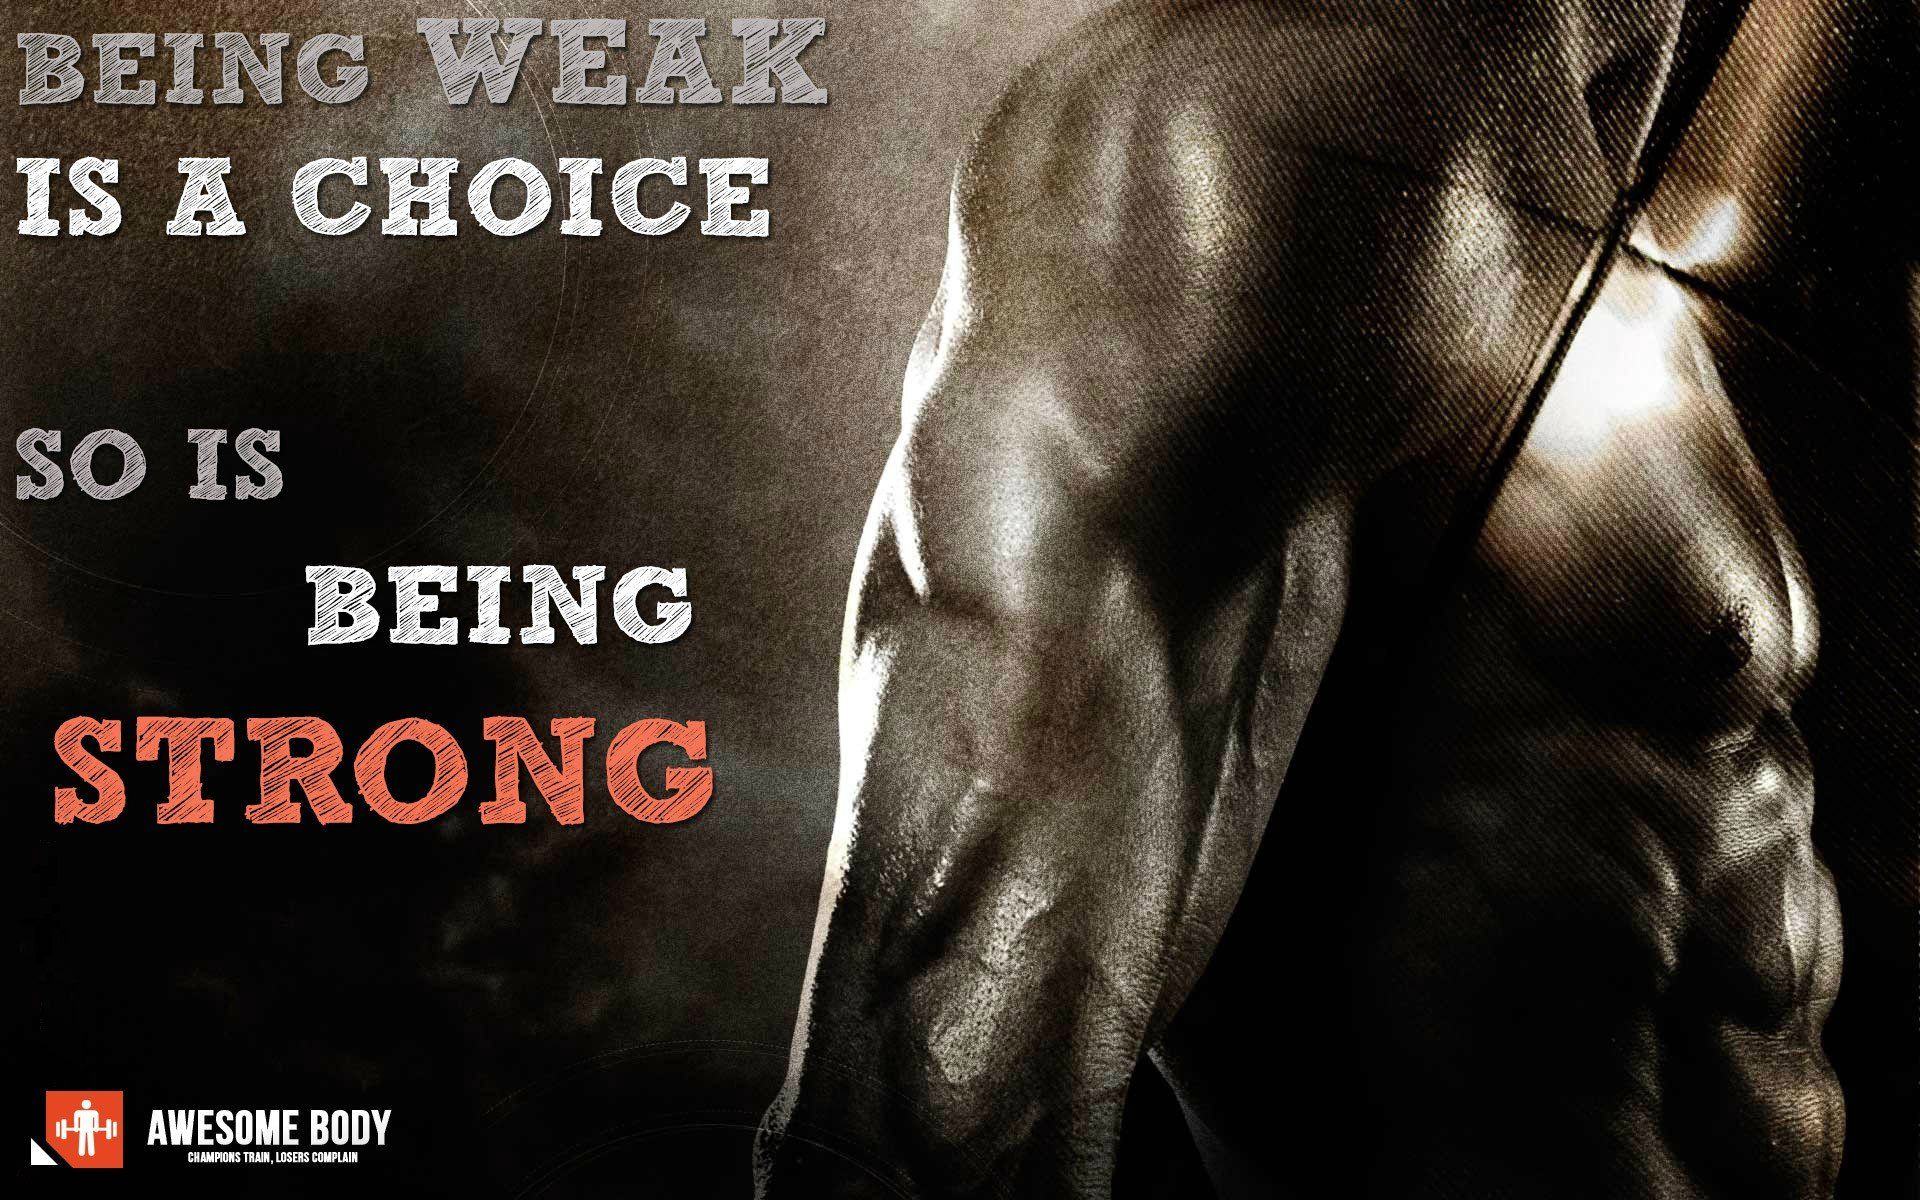 Bodybuilding Motivation Wallpaper HD Being strong is choice 1920x1200